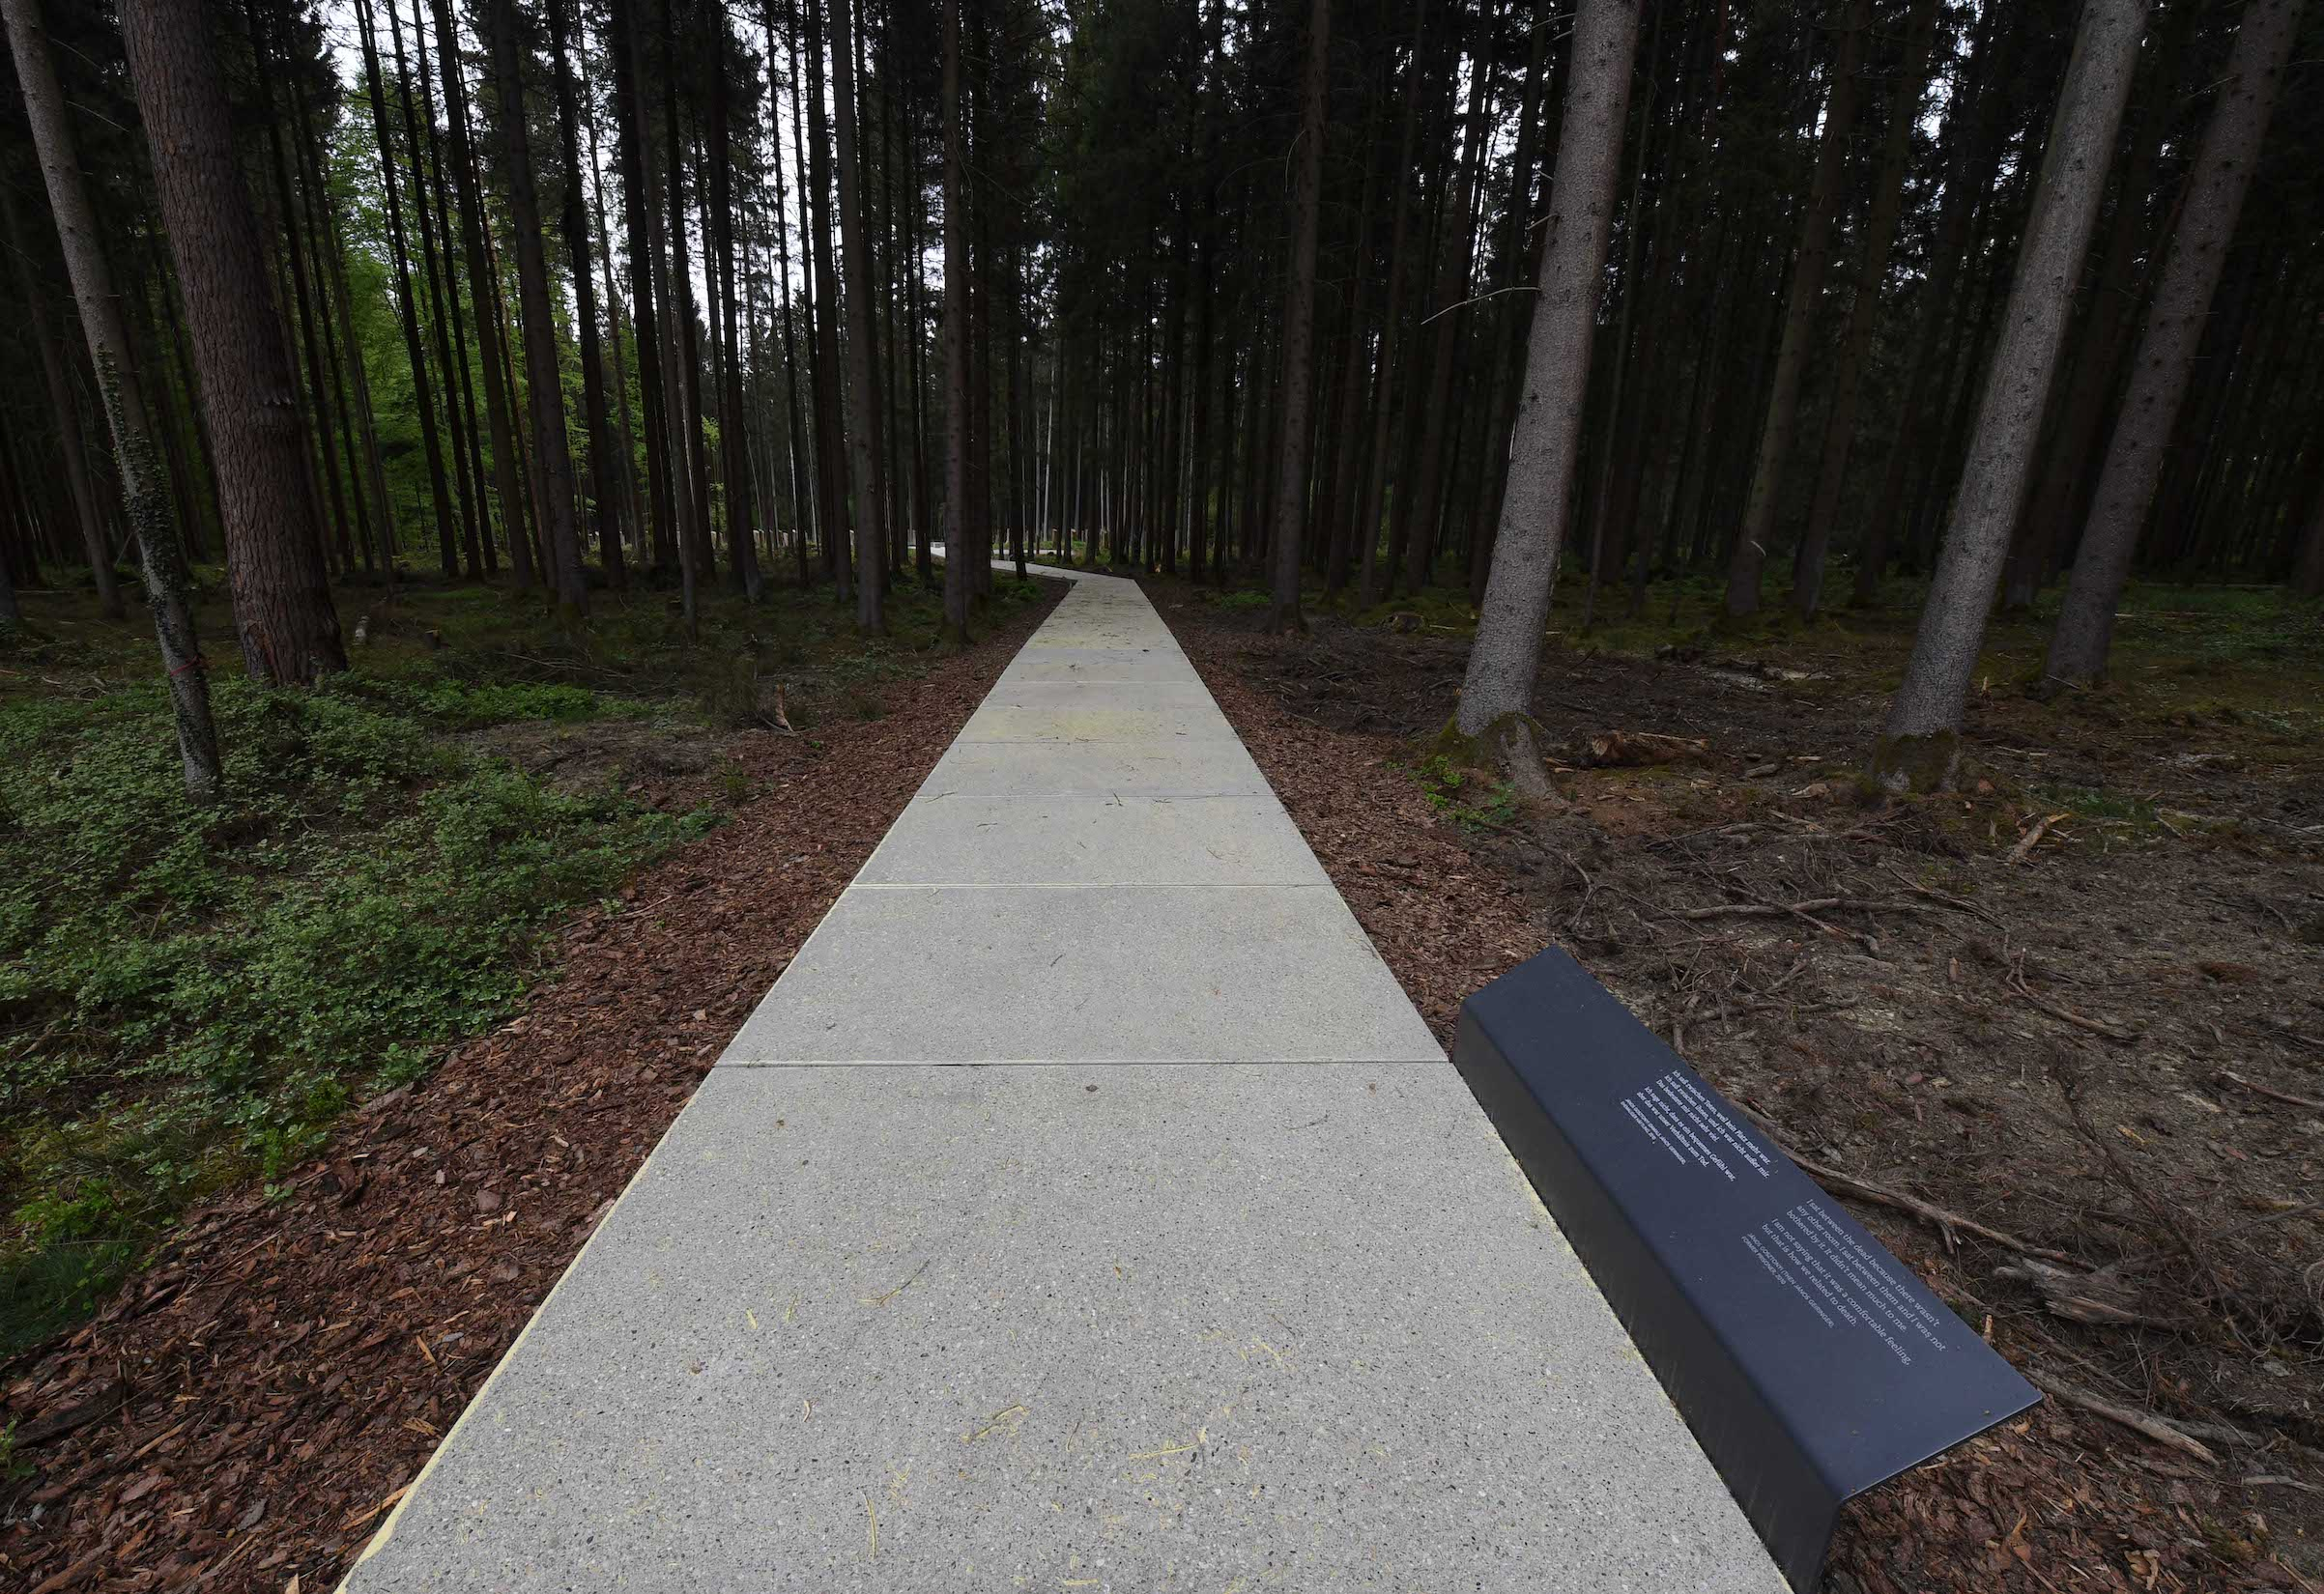 Concrete slabs lead to the places of the former mass grave of the former concentration camp Muehldorf at the Muehldorfer Hart, southern Germany, pictured on April 26, 2018.